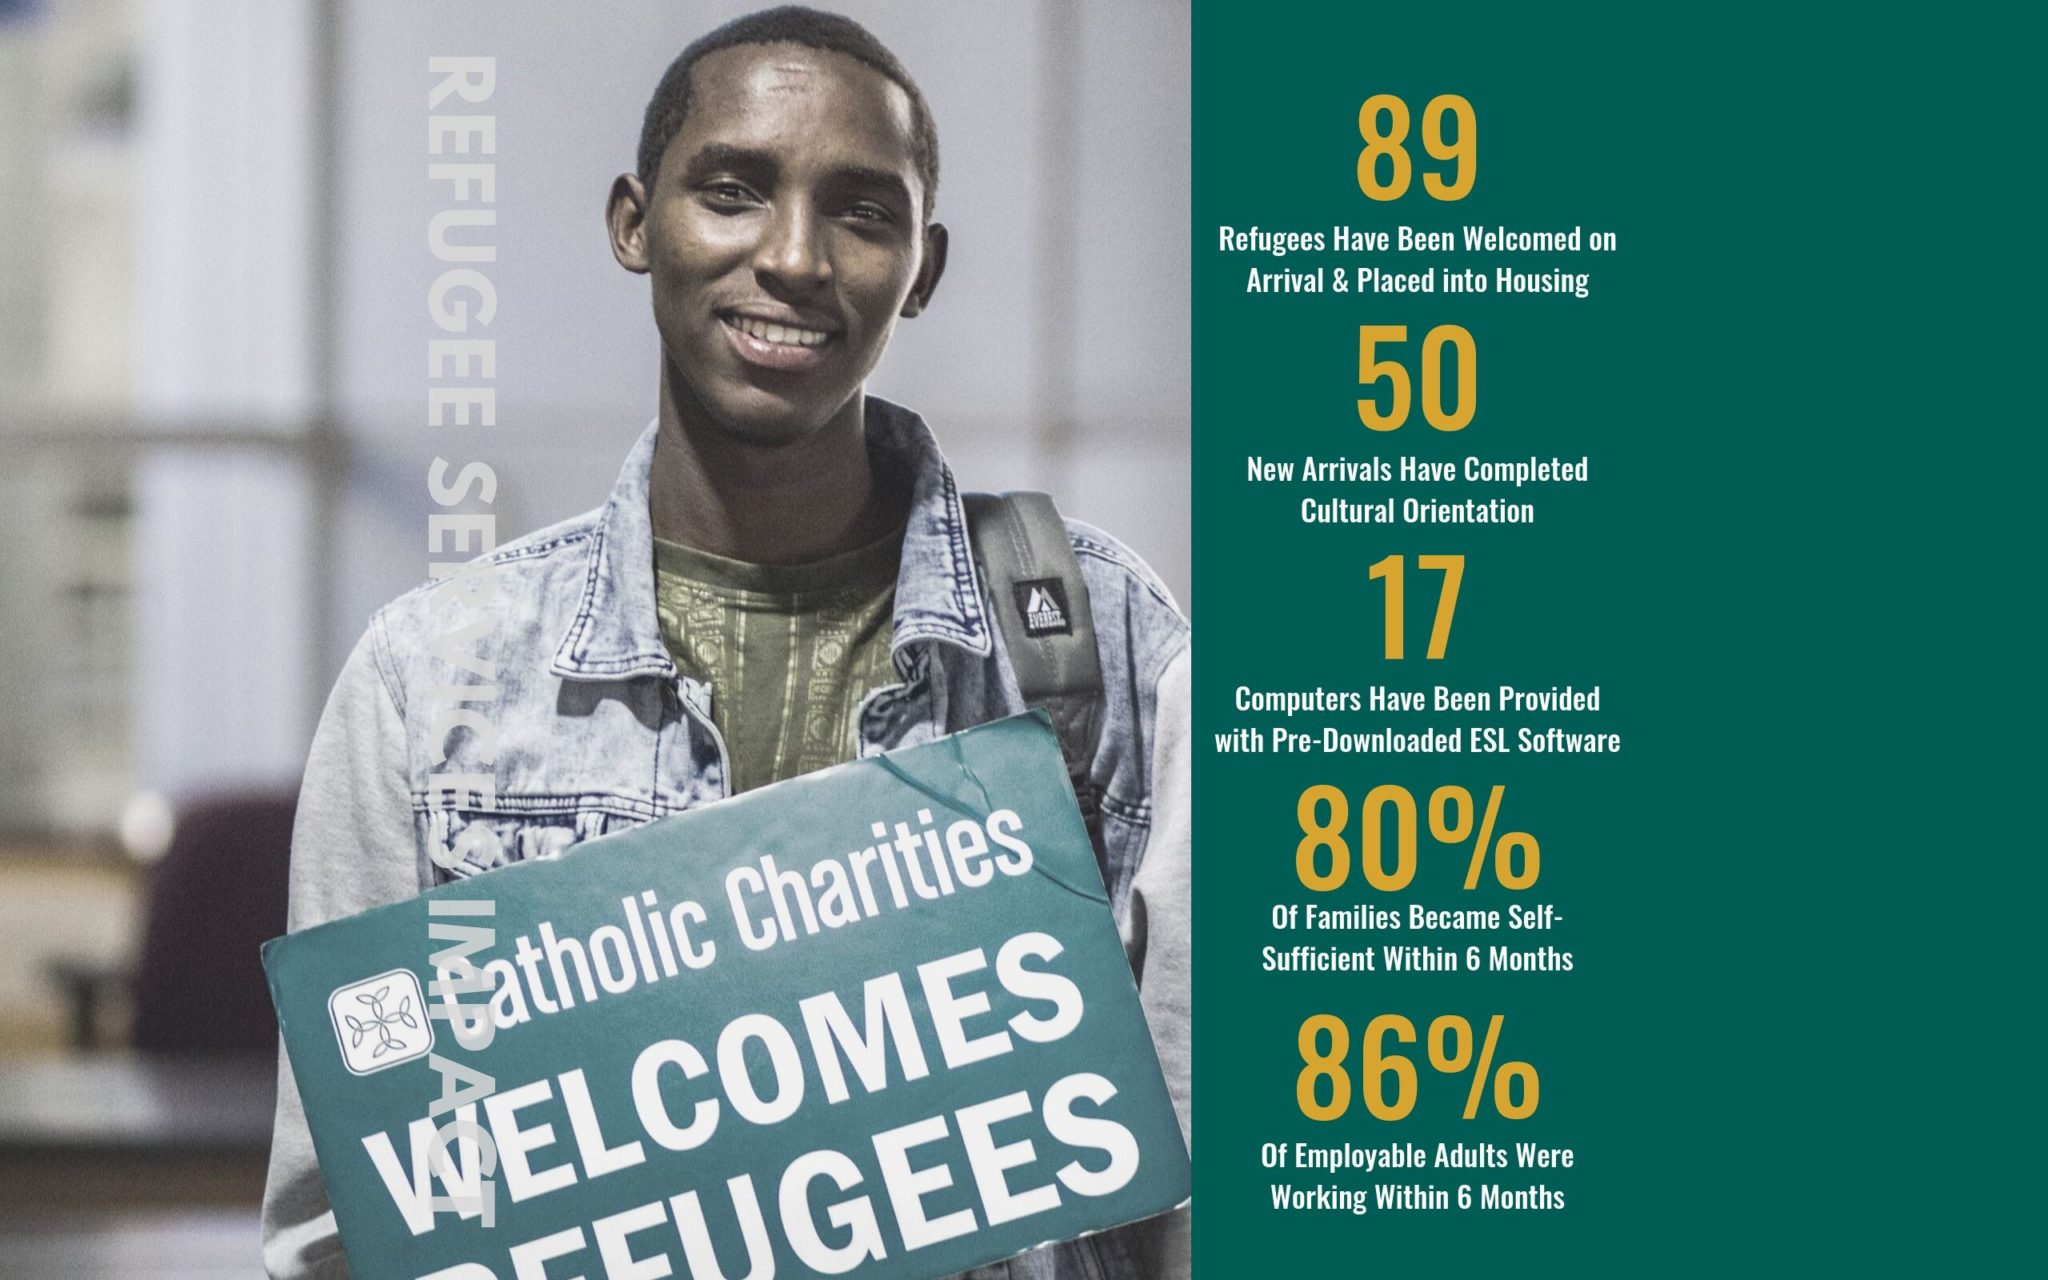 89 refugees have been welcomed on arrival and placed into housing; 50 new arrivals have completed cultural orientation; 17 computers have been provided with pre-downloaded ESL software; 80% of families became self sufficient within 6 months; 86% of employable adults were working within 6 months